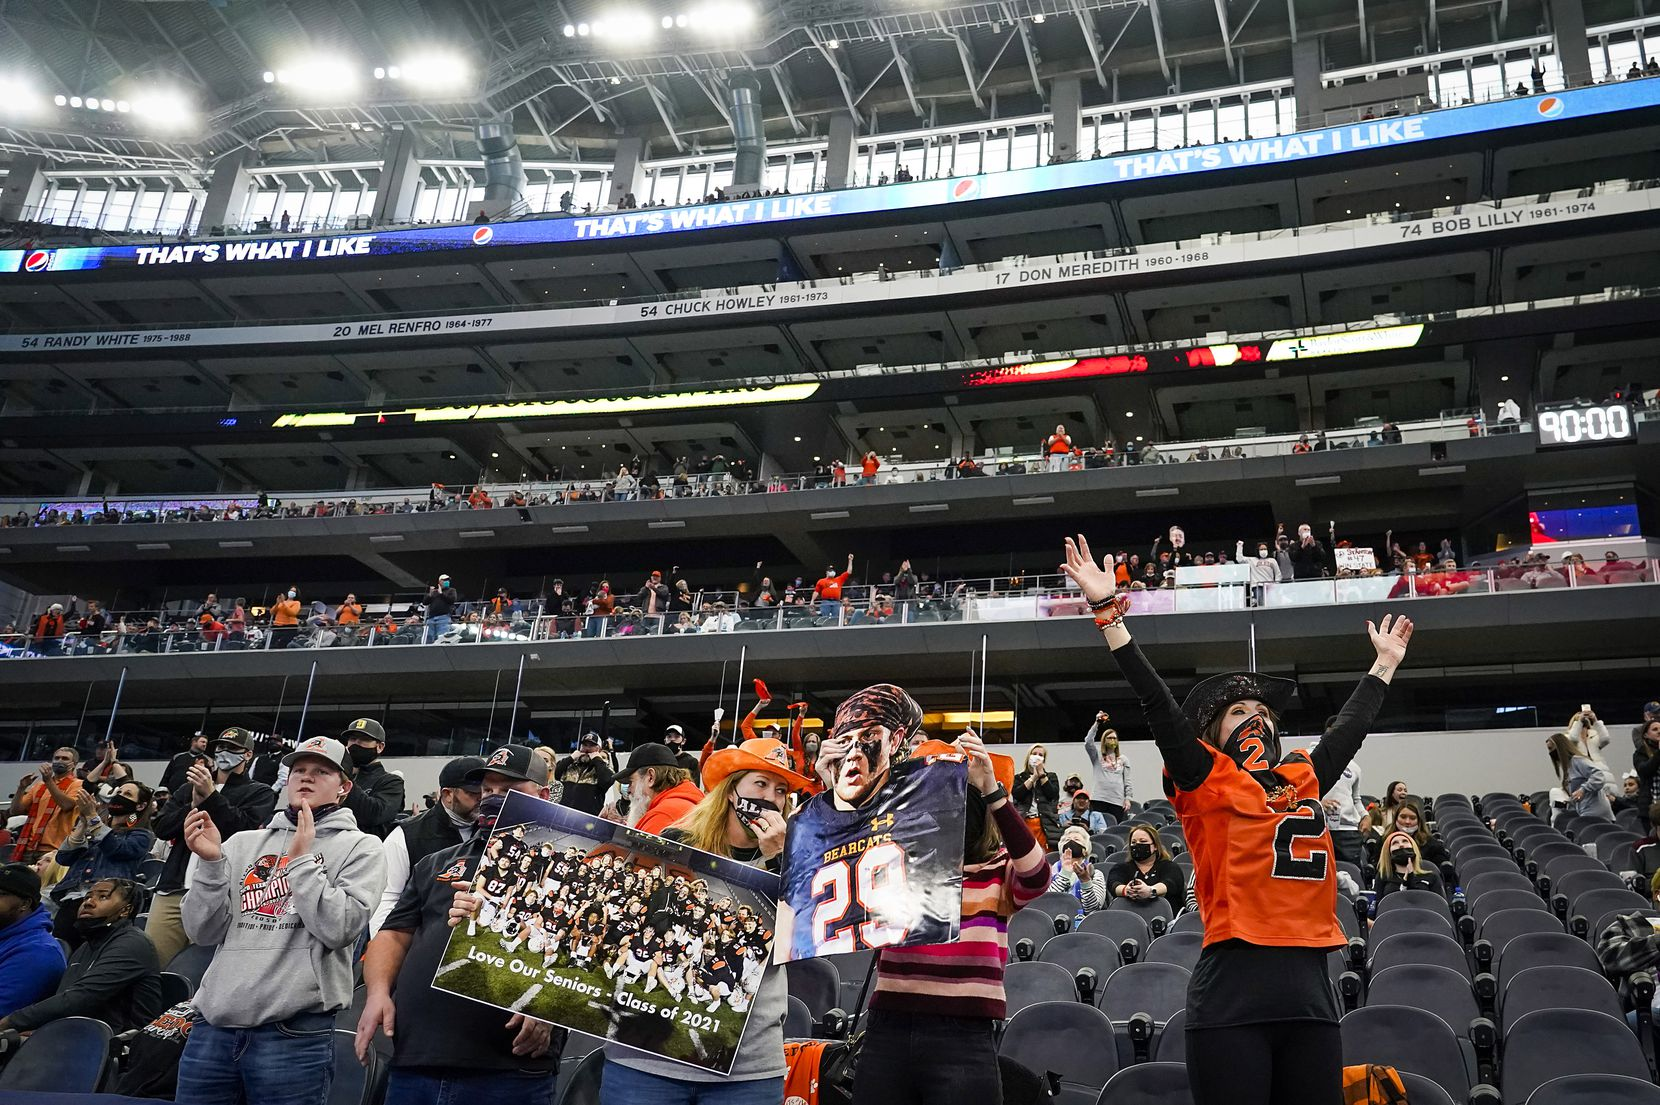 Aledo fans cheer as their team leaves the field with a lead over Crosby at the end of the first half of the Class 5A Division II state football championship game at AT&T Stadium on Friday, Jan. 15, 2021, in Arlington. (Smiley N. Pool/The Dallas Morning News)